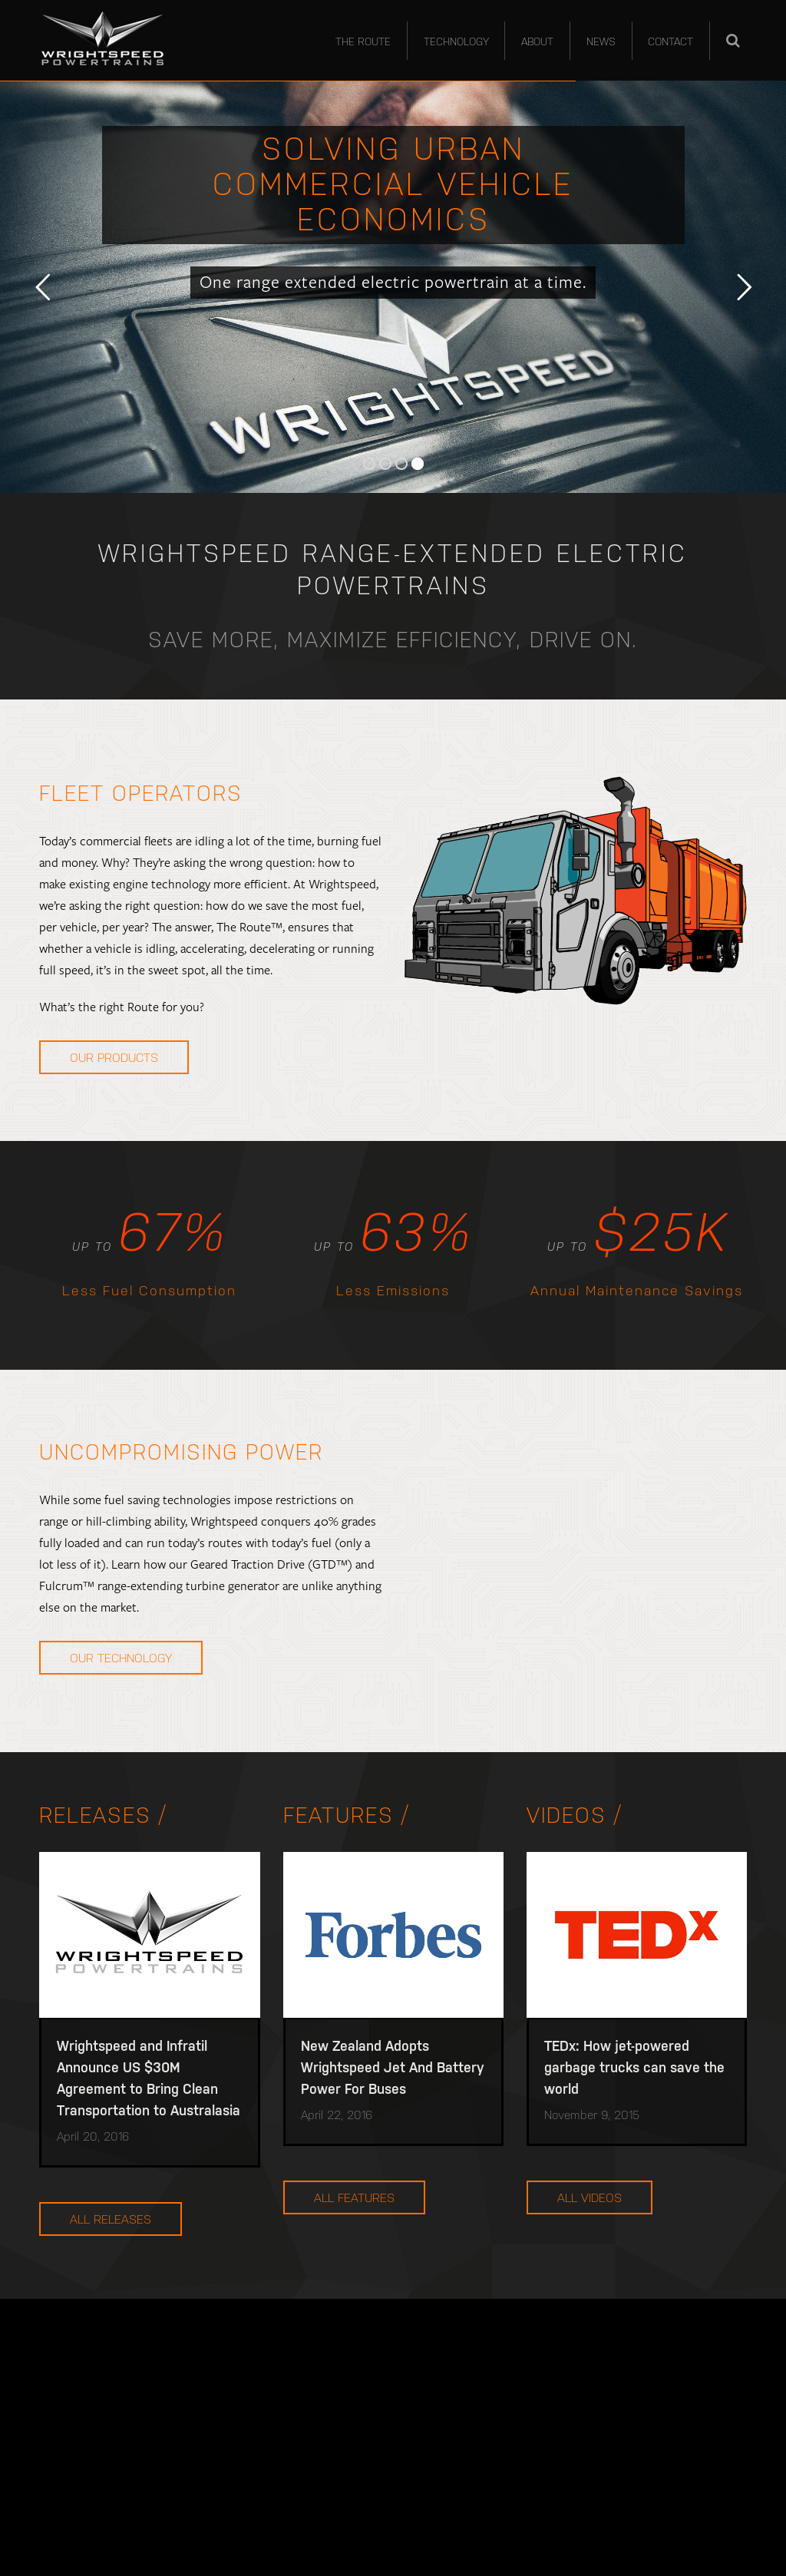 Related Products For Mack Trucks Electrical Service Documentation